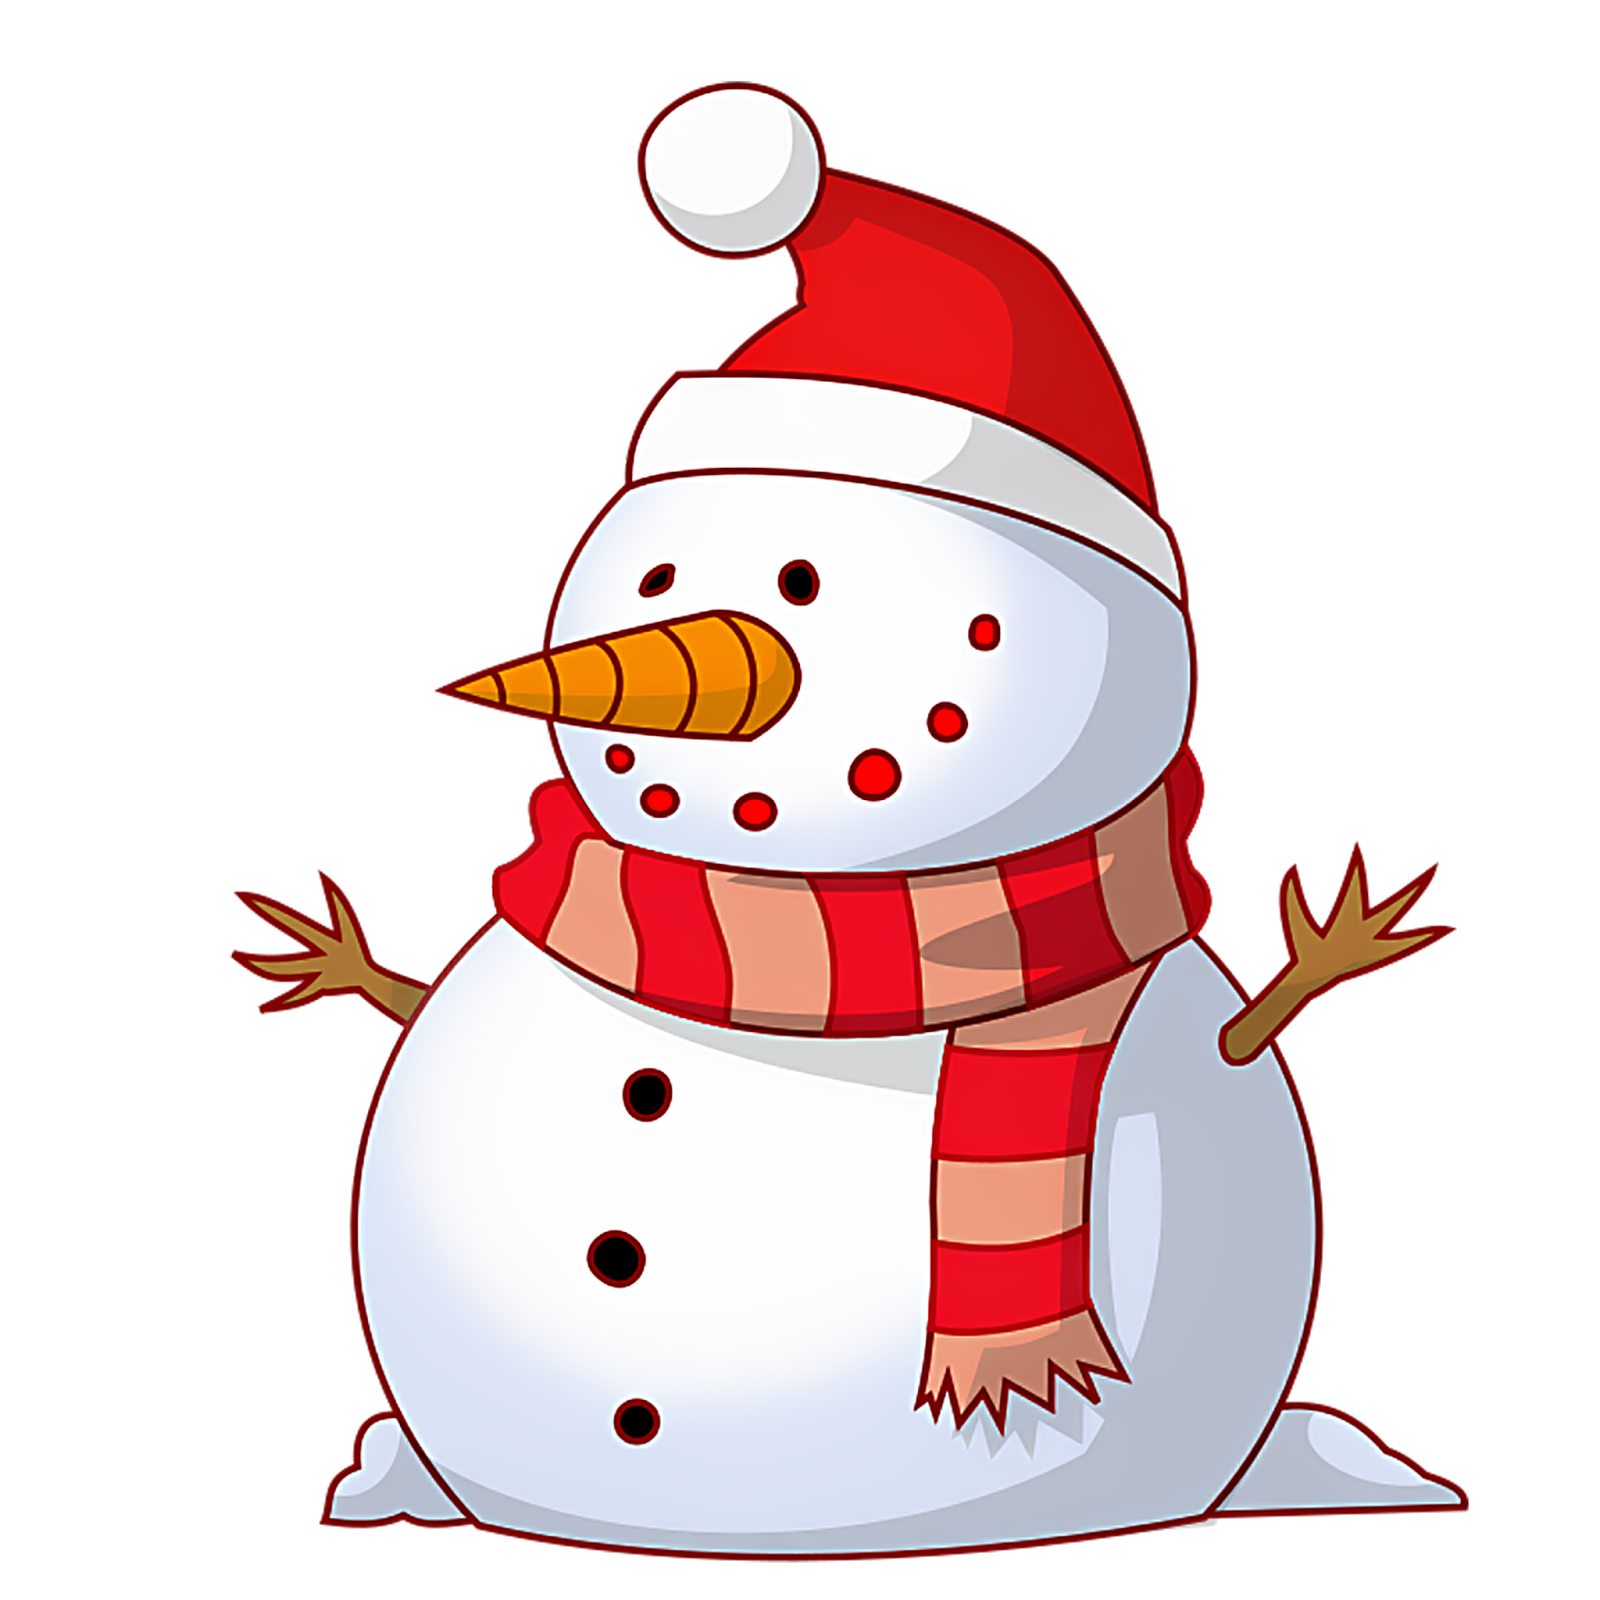 Snowman vector clipart png transparent download gif snowman images | snowman clip art free. | It\'s The Most ... png transparent download